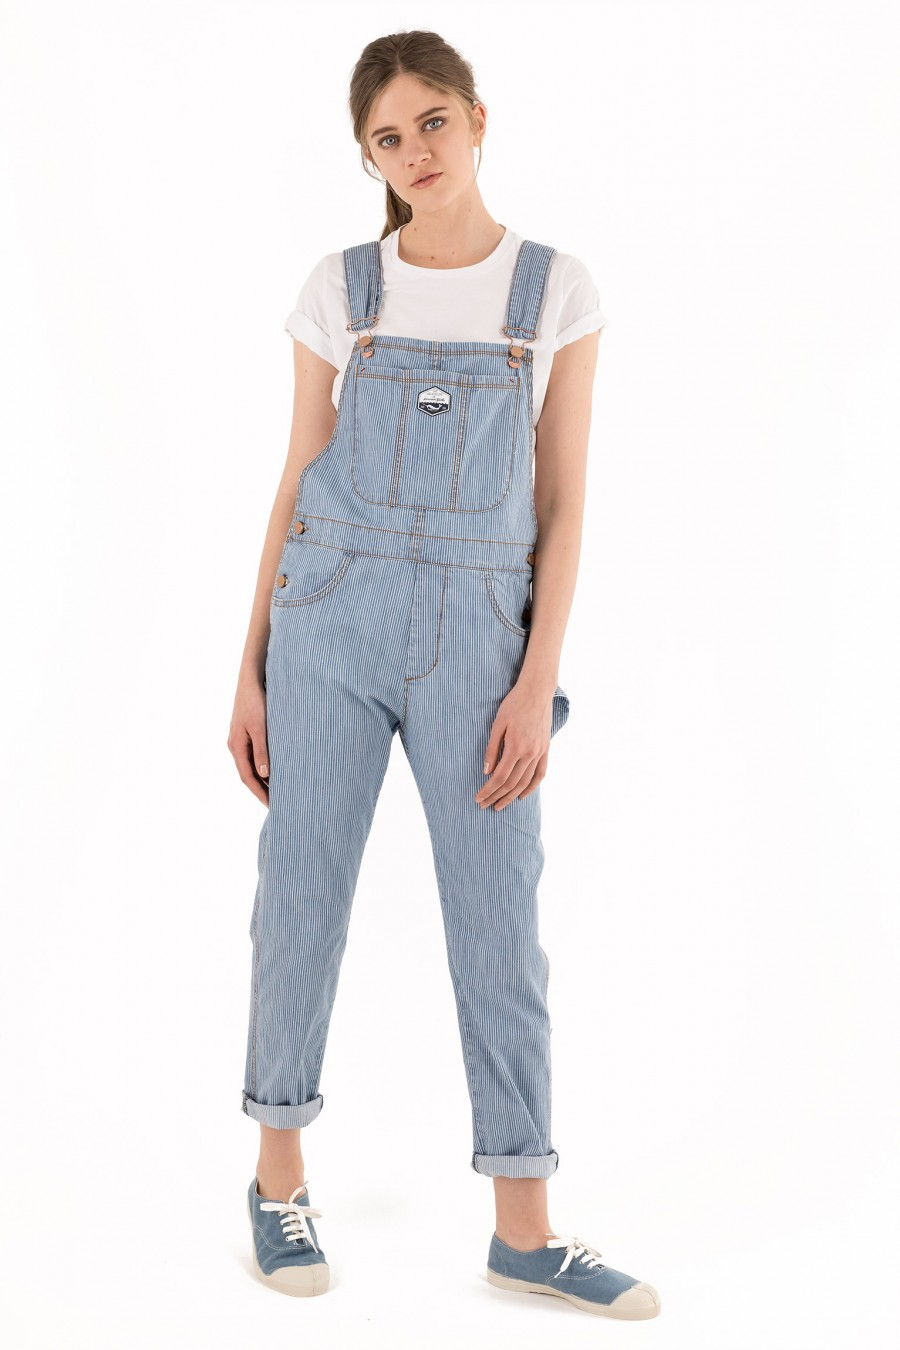 Light blue striped overalls